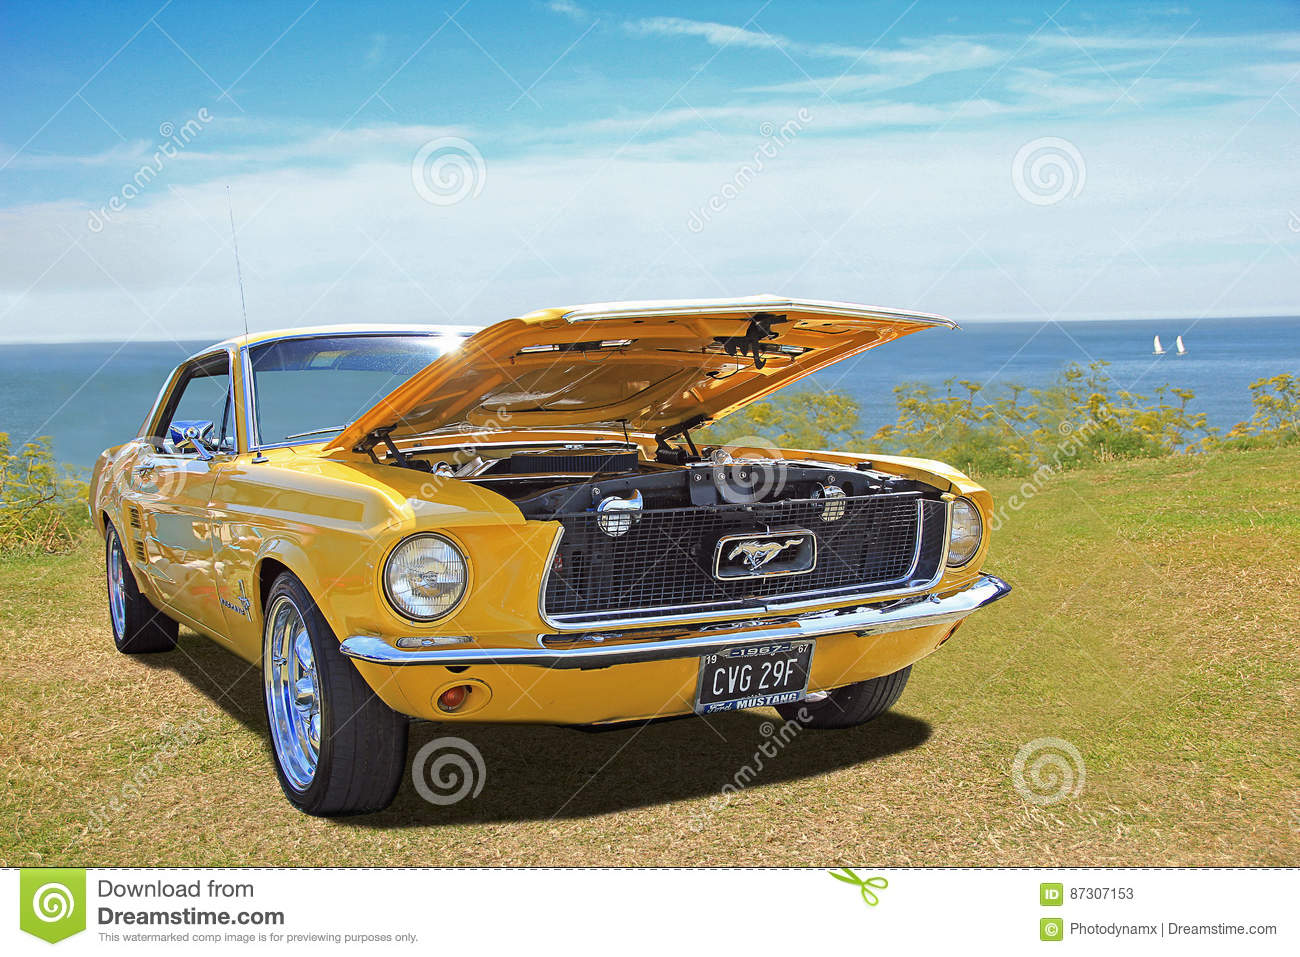 Vintage classic ford mustang